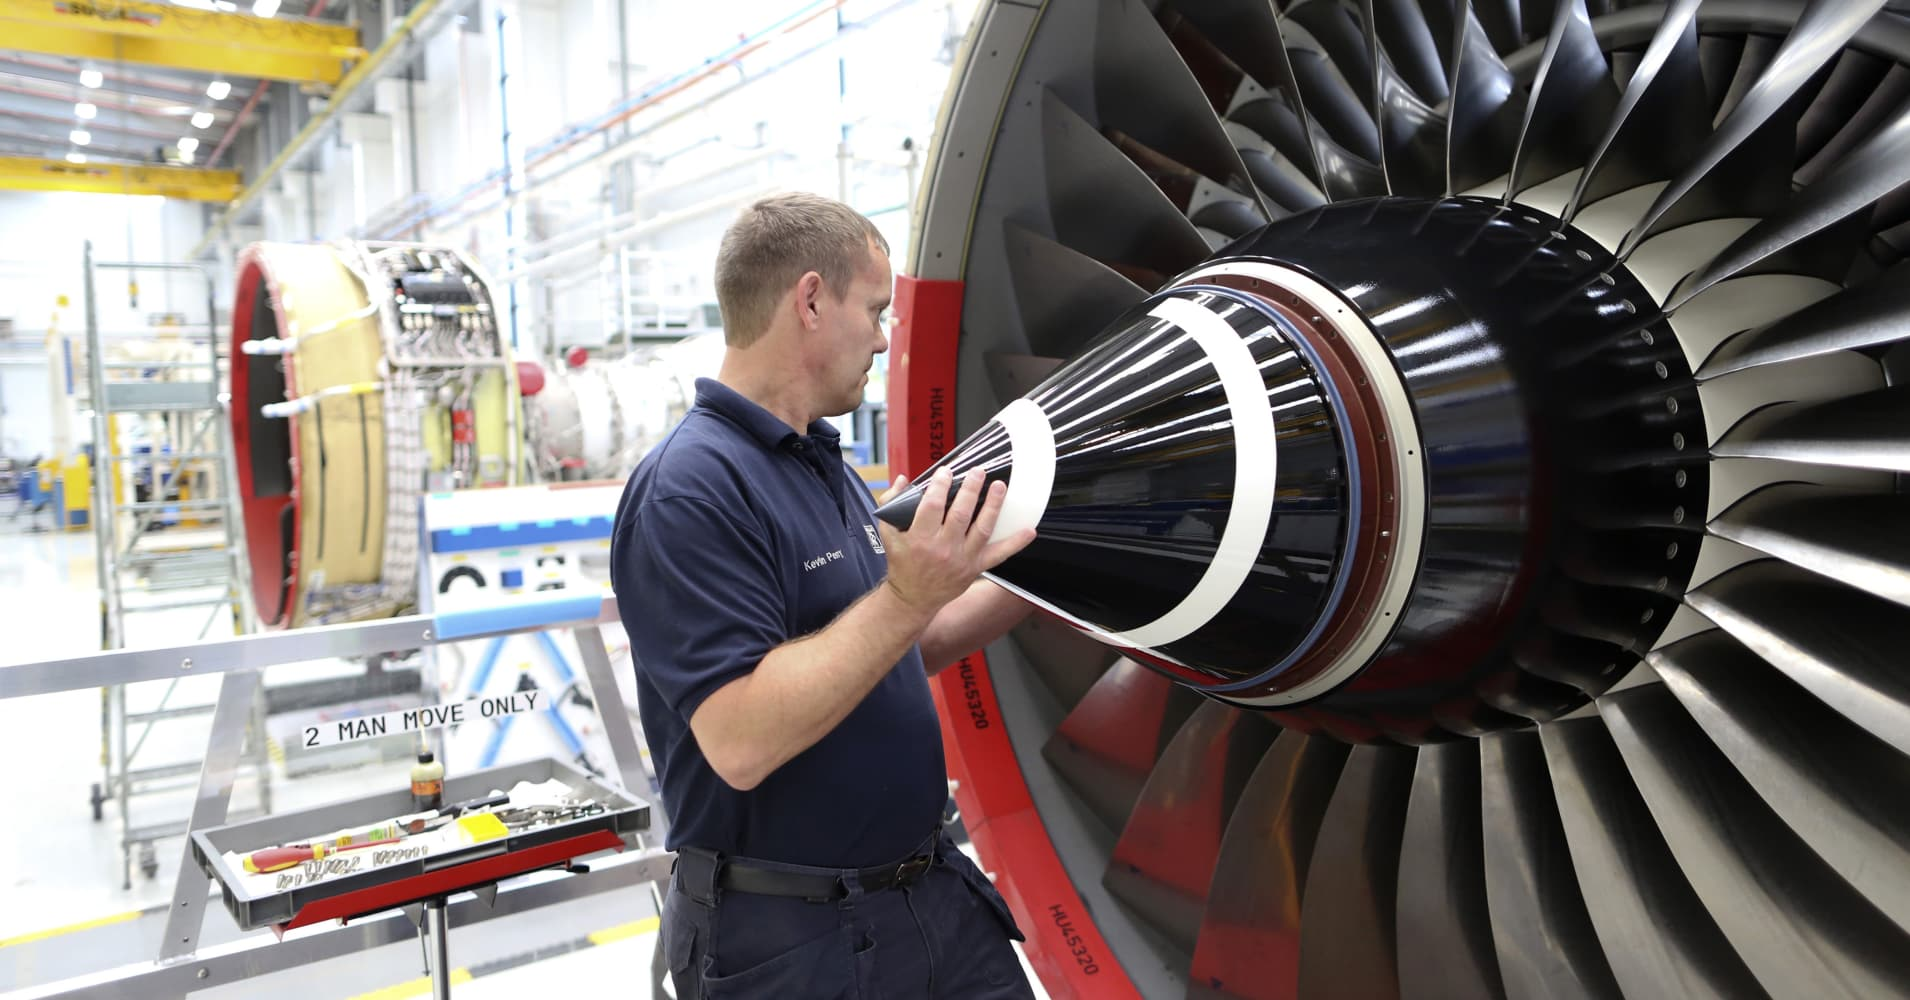 Rolls-Royce Secures 7,000 Jobs As Firm Looks To Double